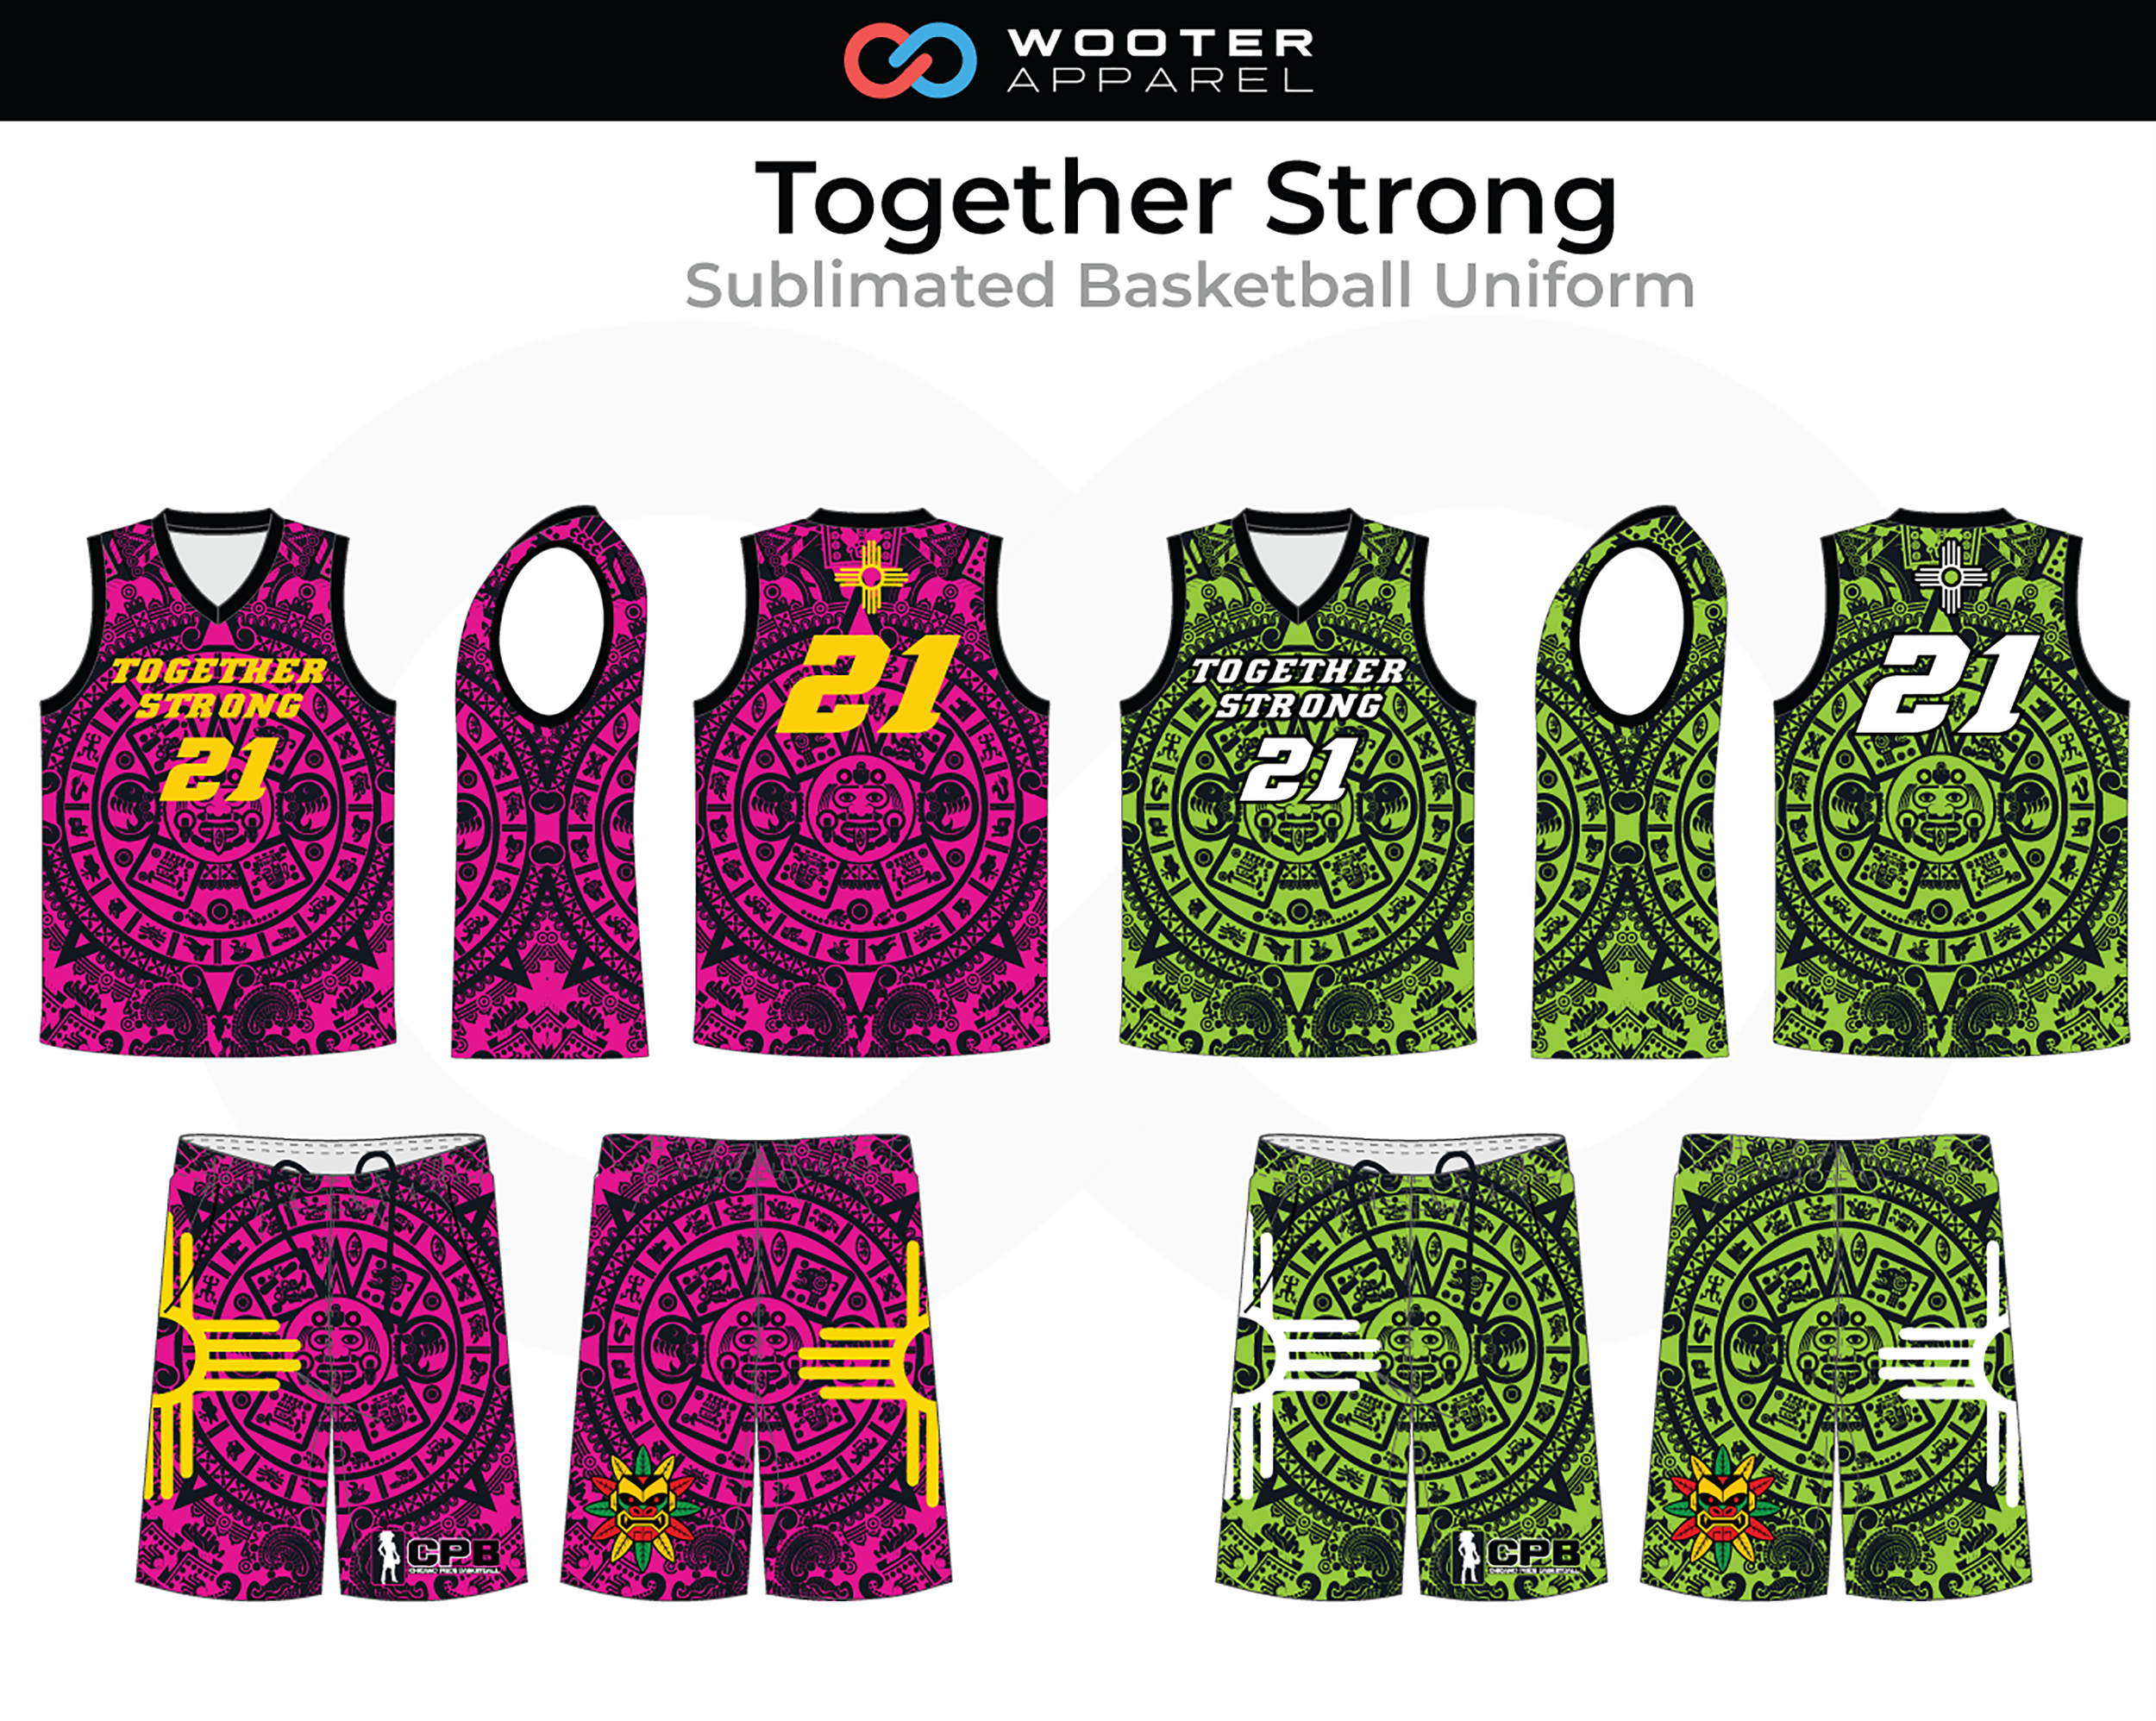 TOGETHER STRONG Purple Green Yellow White Basketball Uniform, Jersey and Shorts